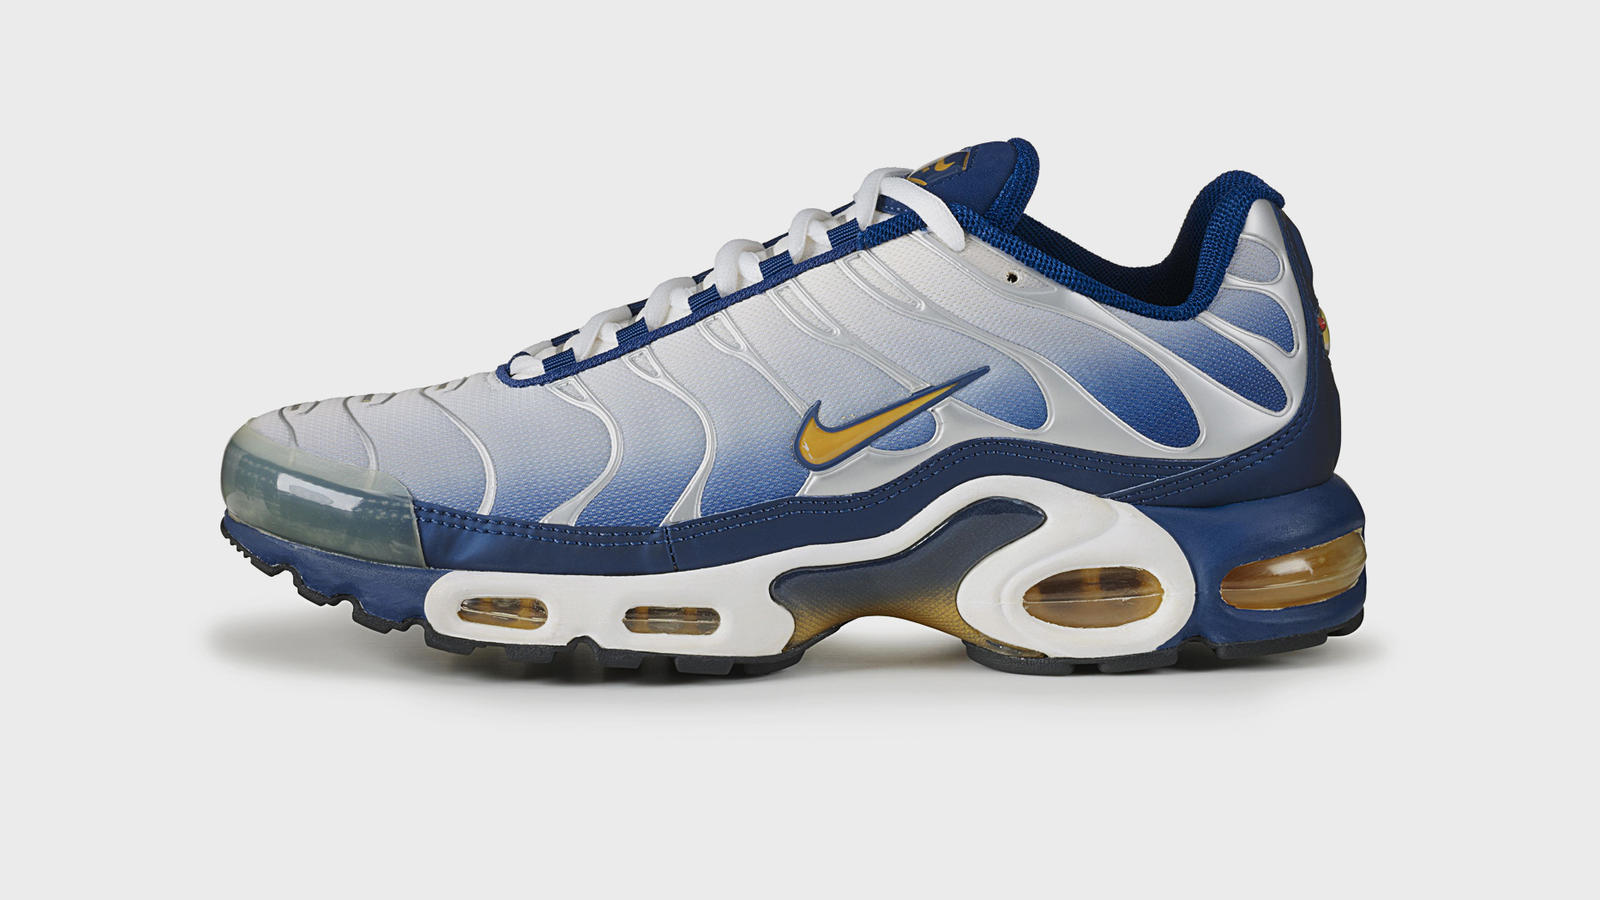 62736e4367 The Untold Story of the Nike Air Max Plus 24